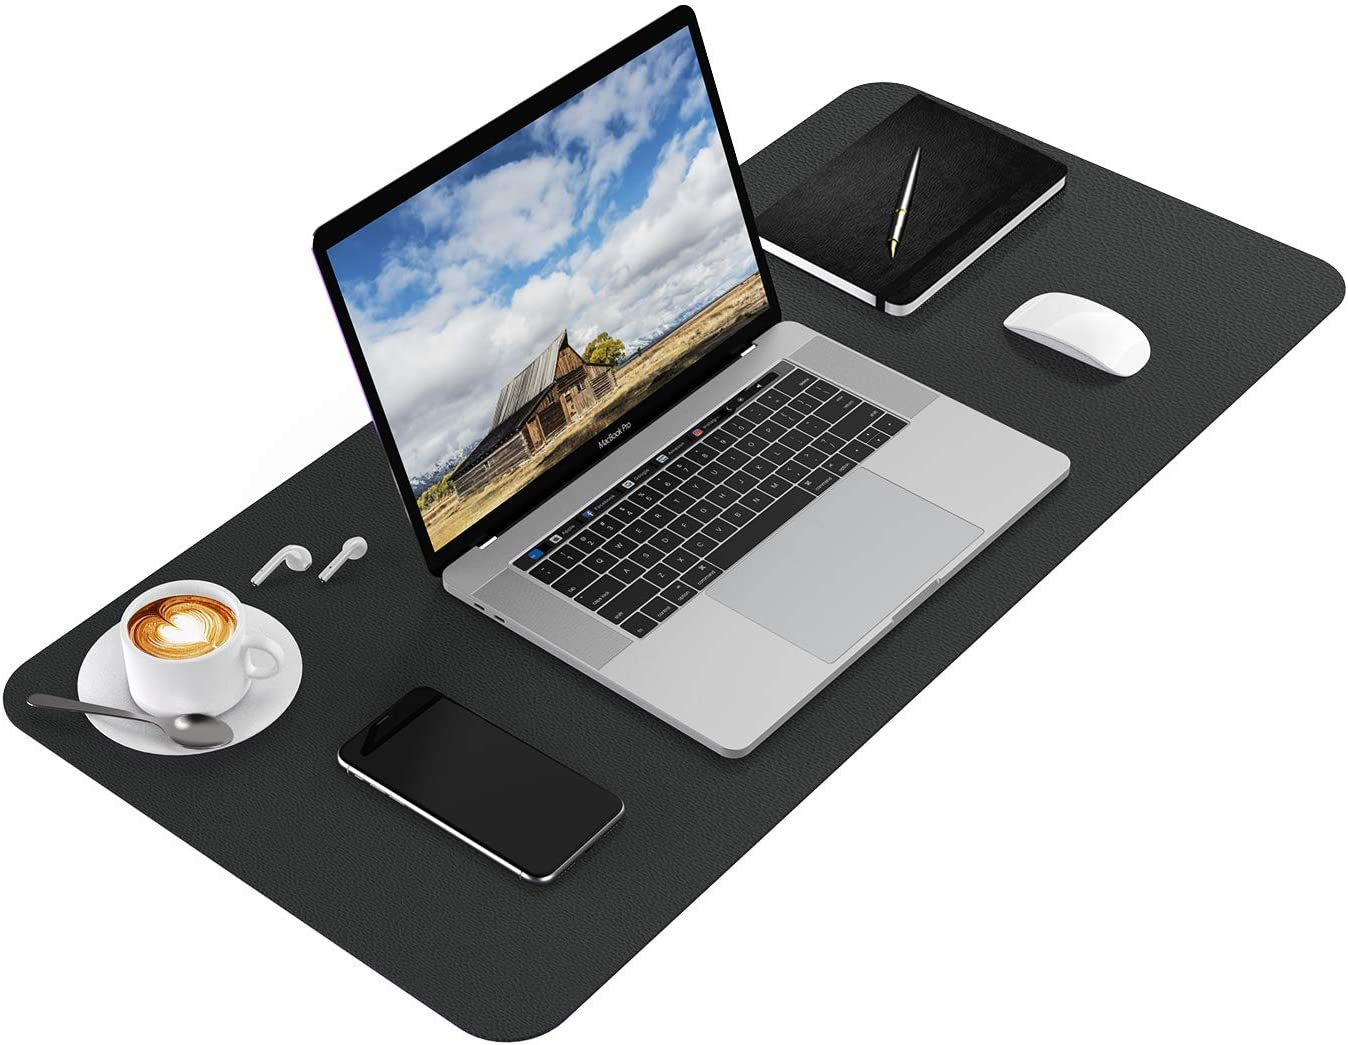 Ktrio Office Desk Mat Large Desk Pad Protector, PU Leather Desk Blotter Pad, Mouse Pad Waterproof Full Desk Cover Mat, Ultra-thin Writing Mat for Laptop Office & Home, 31.5 x 15.7 x 0.08 inches, Black